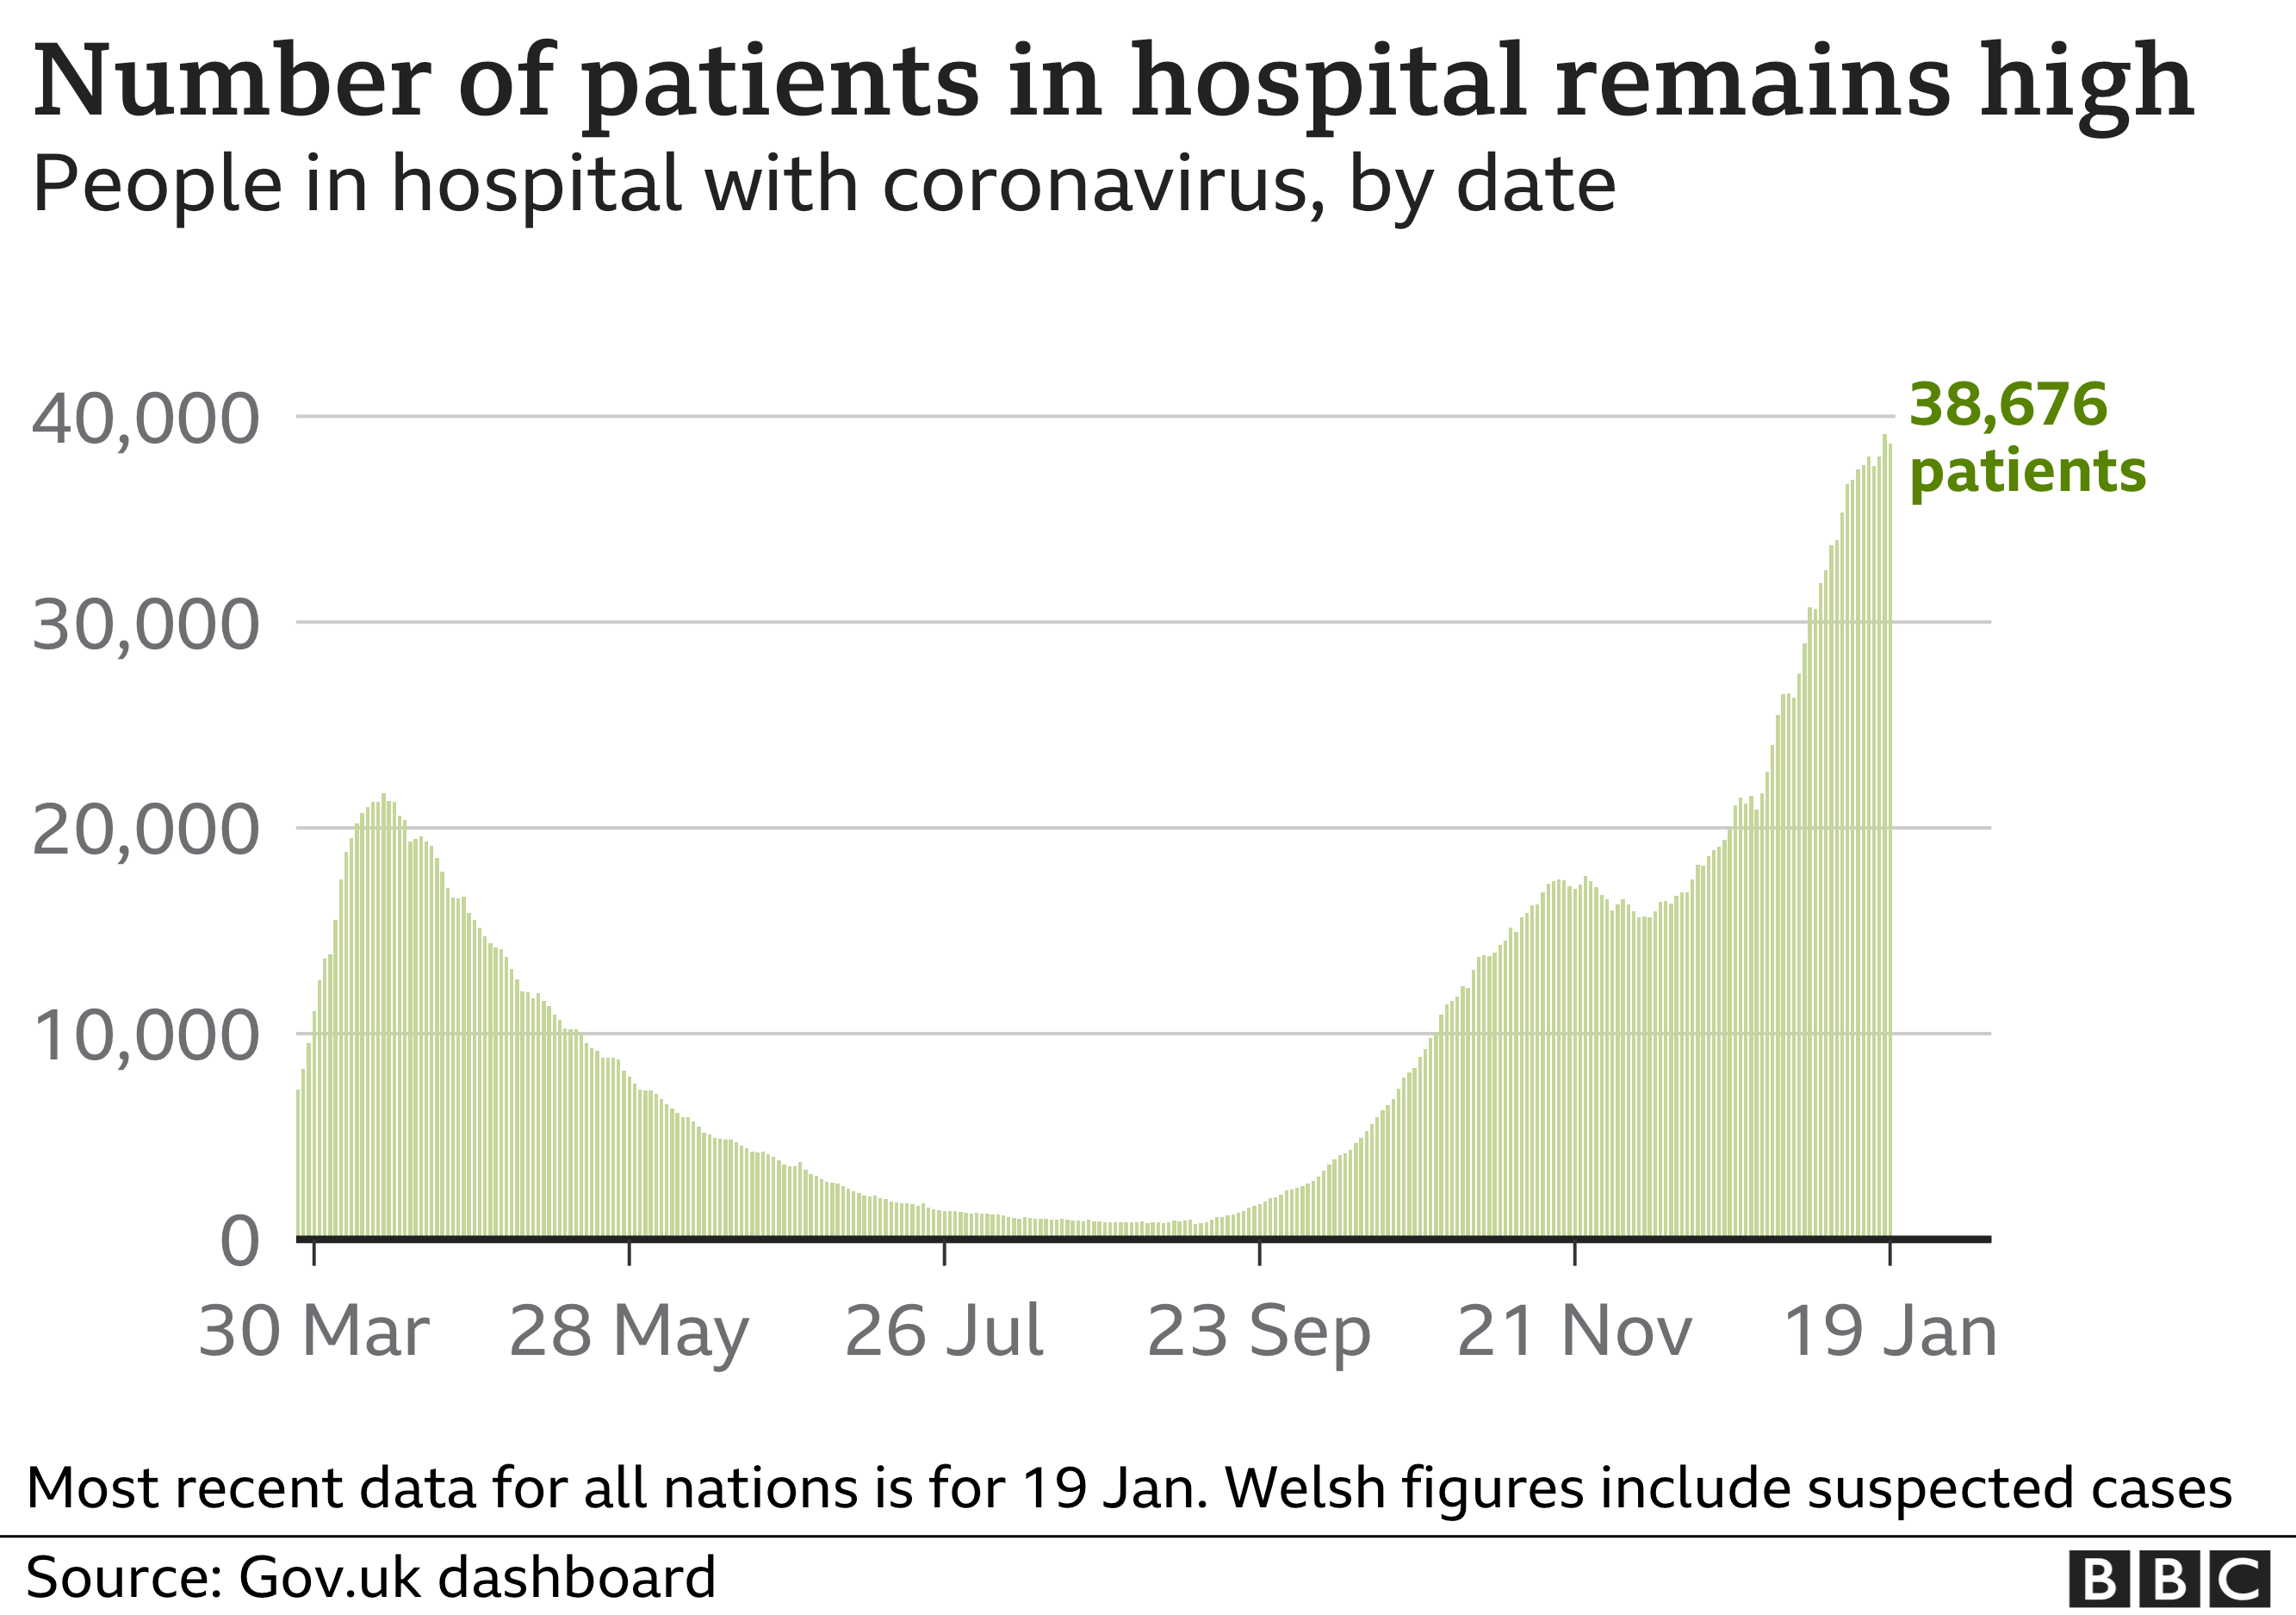 Chart shows numbers of patients in hospital remains high